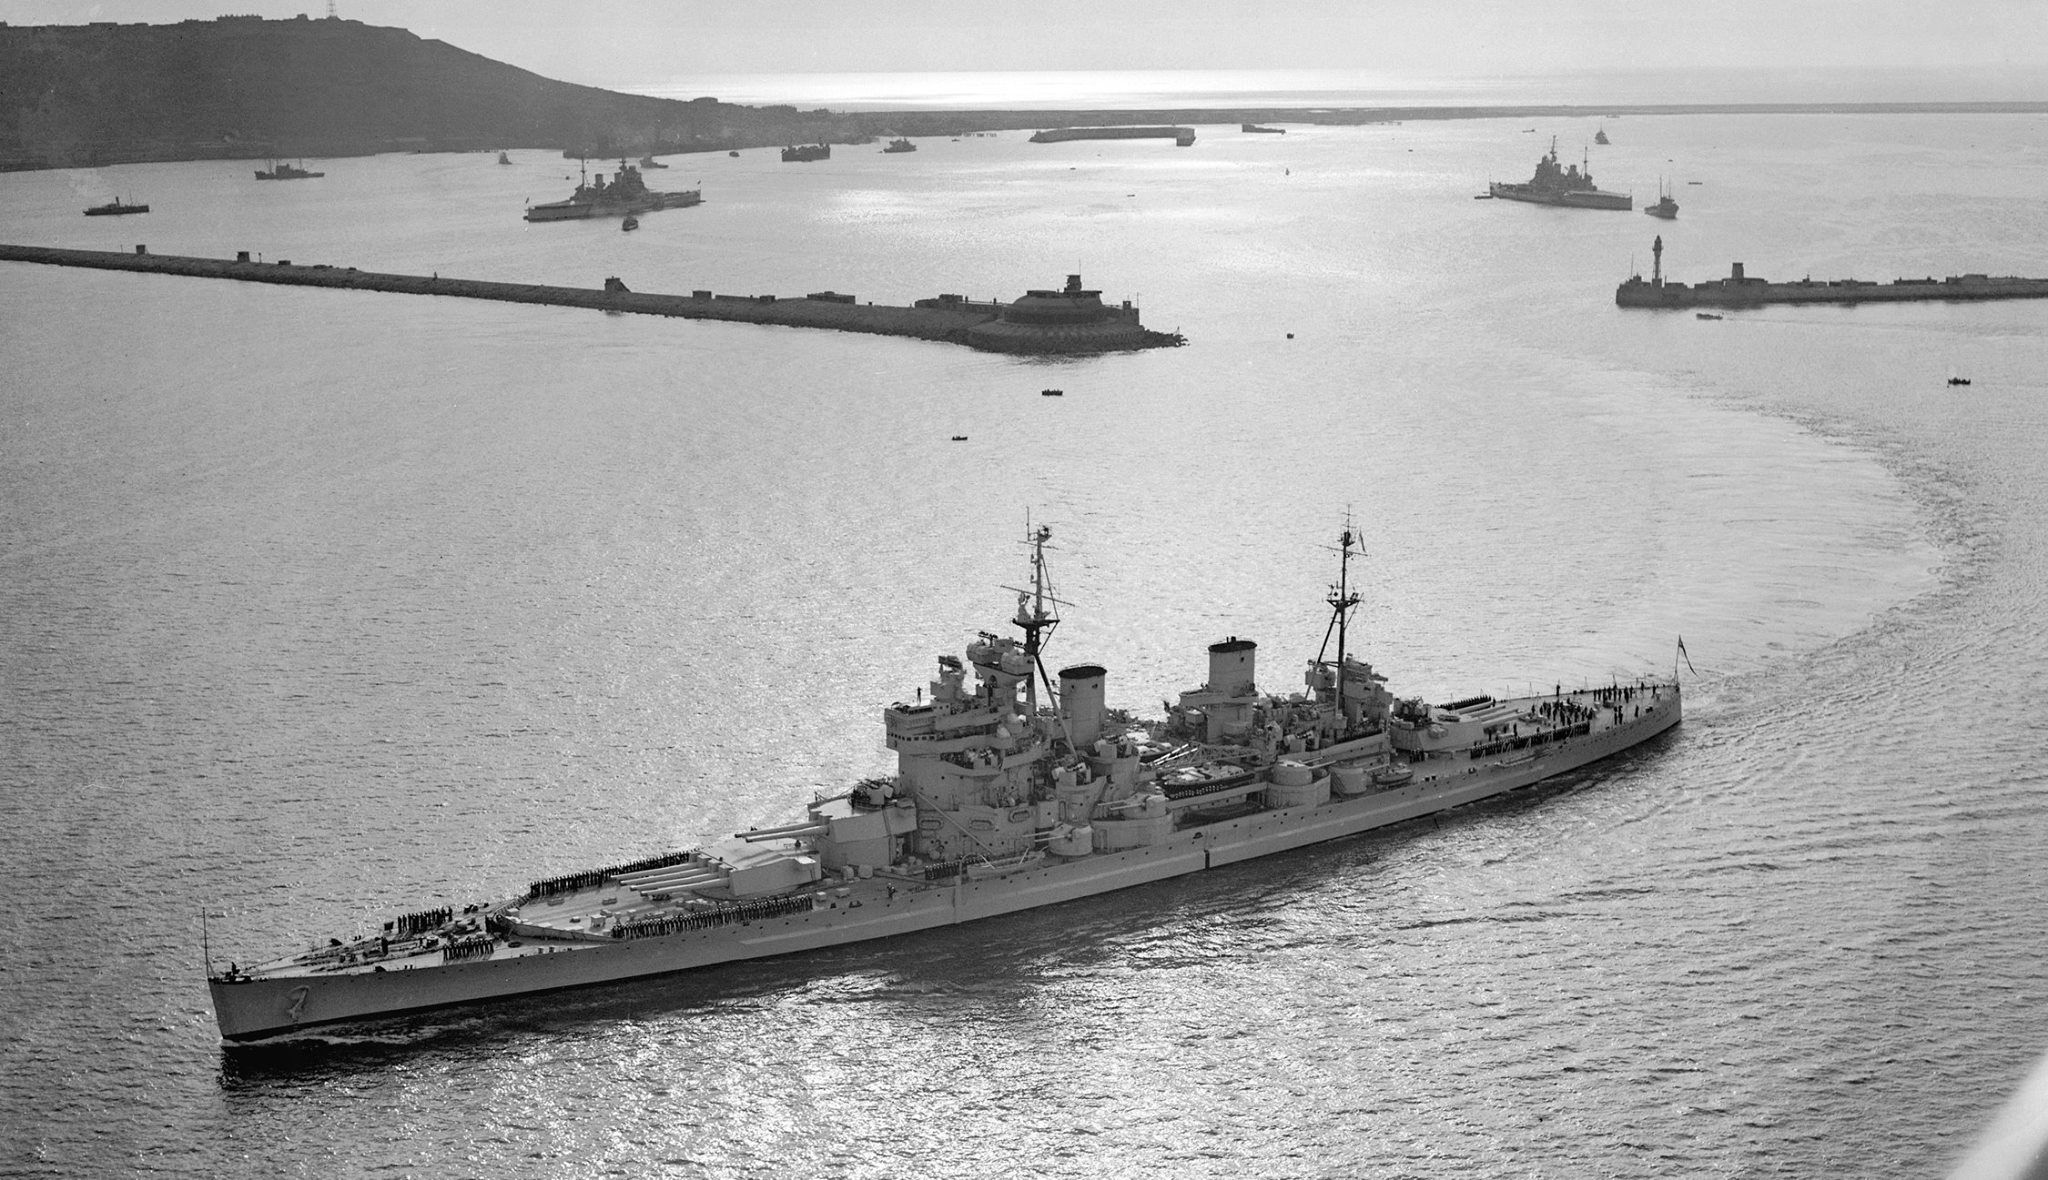 Another picture (see nearby) of 14 in King George V class battleship HMS Duke of York, 1944. Her sisters Anson and Howe are in the background.